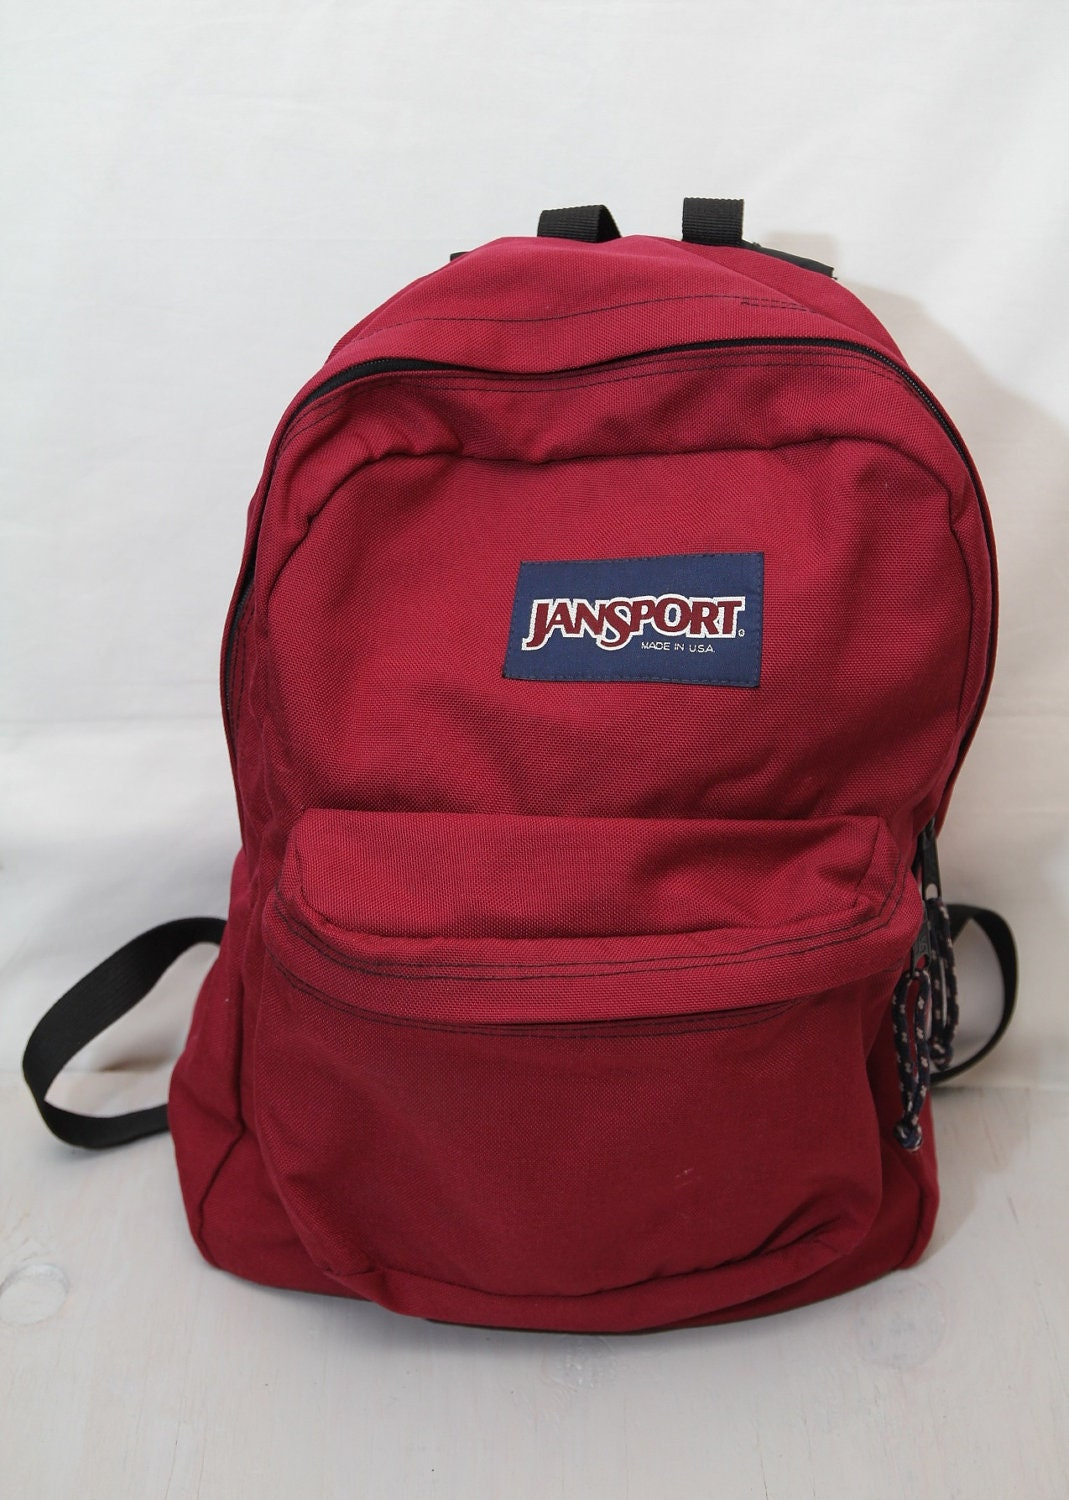 jansport red and black backpack Backpack Tools